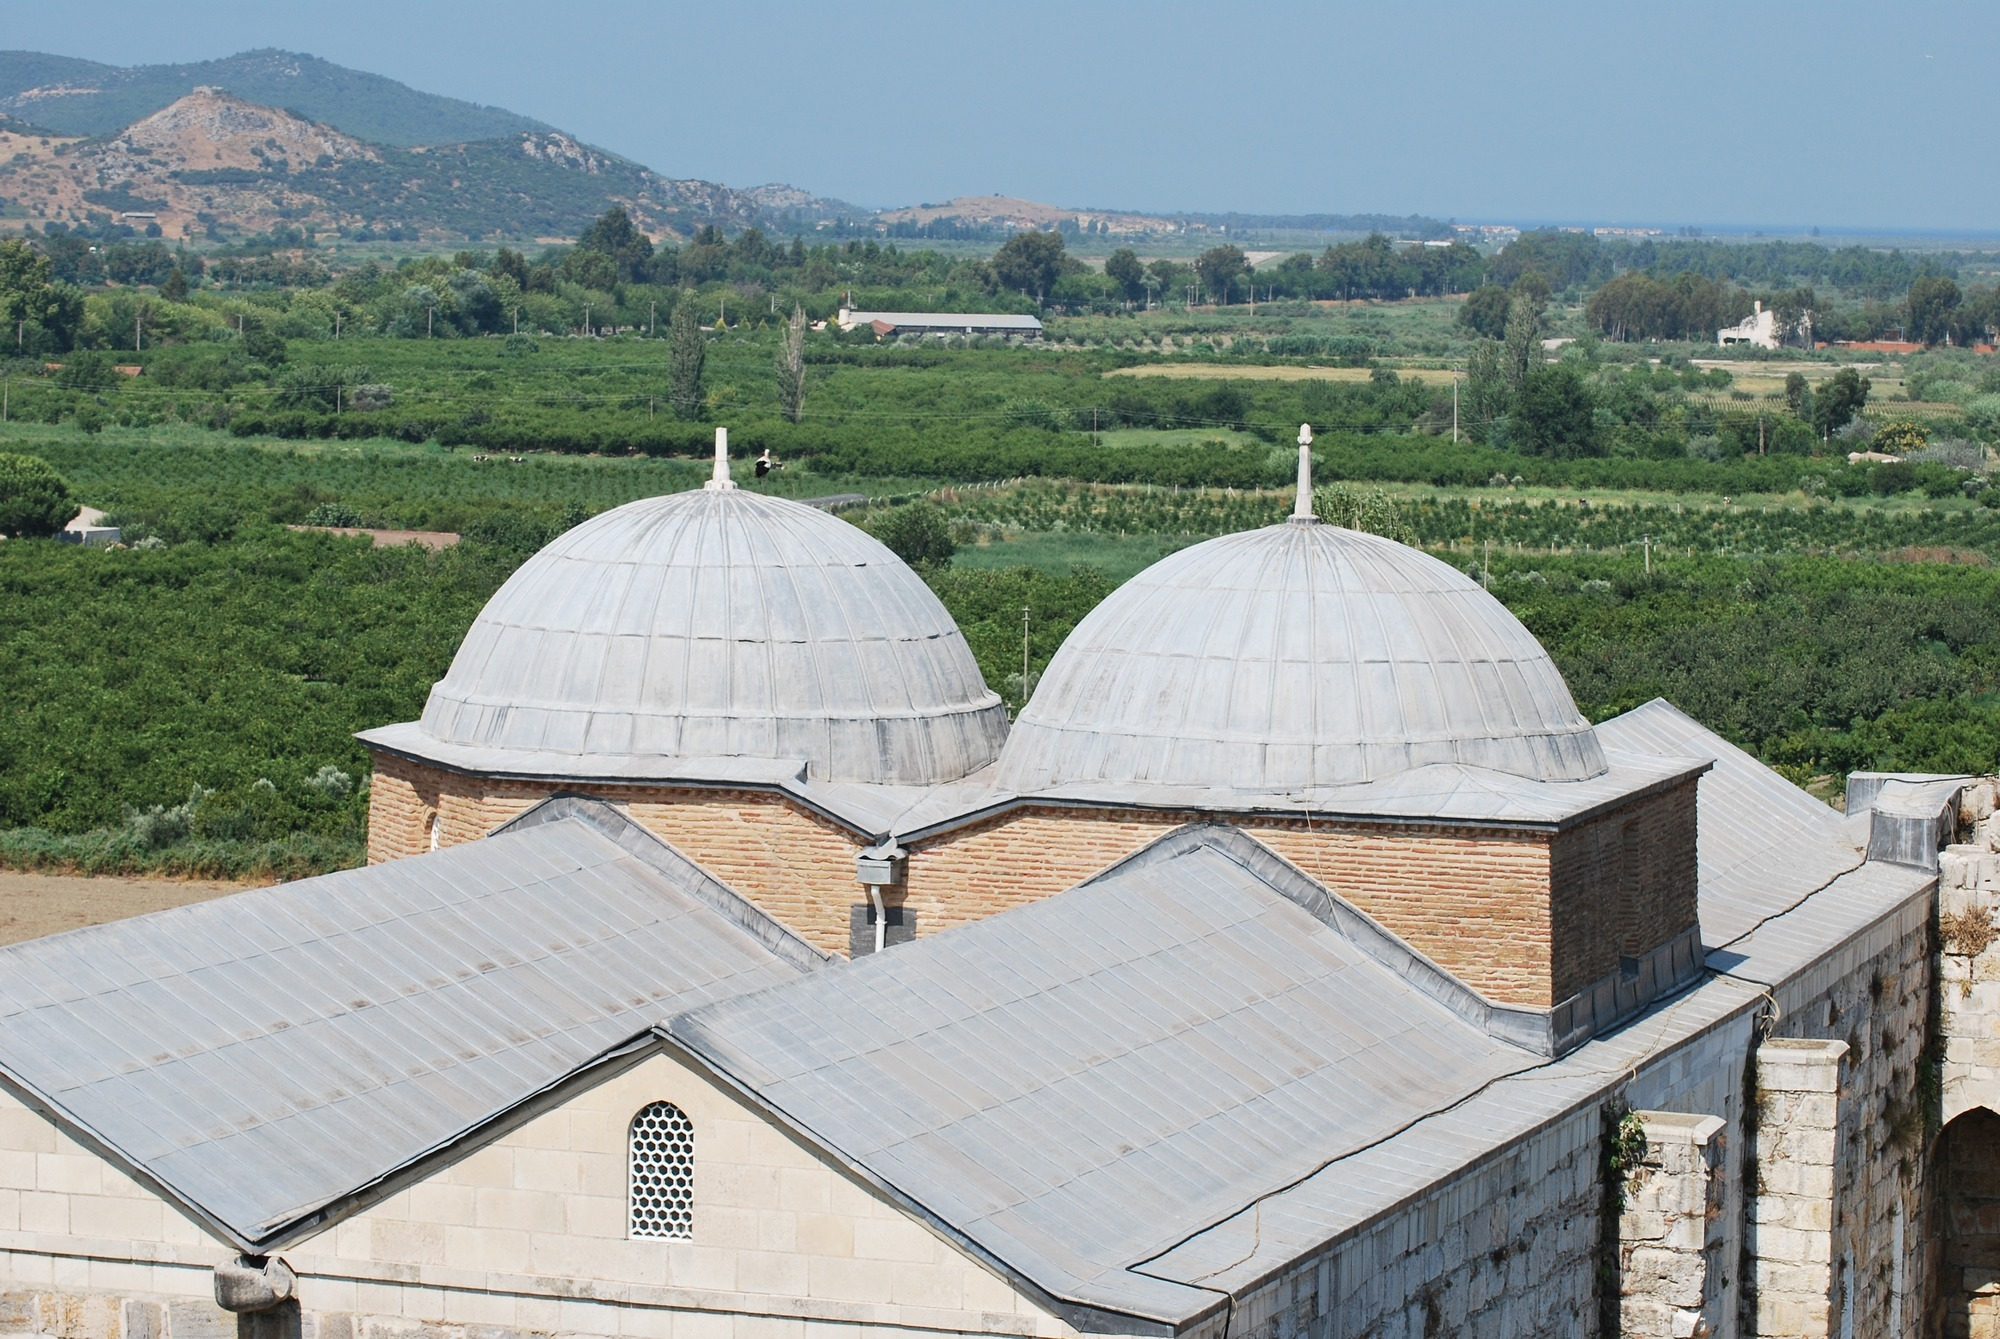 Twin domes of İsa Bey Mosque